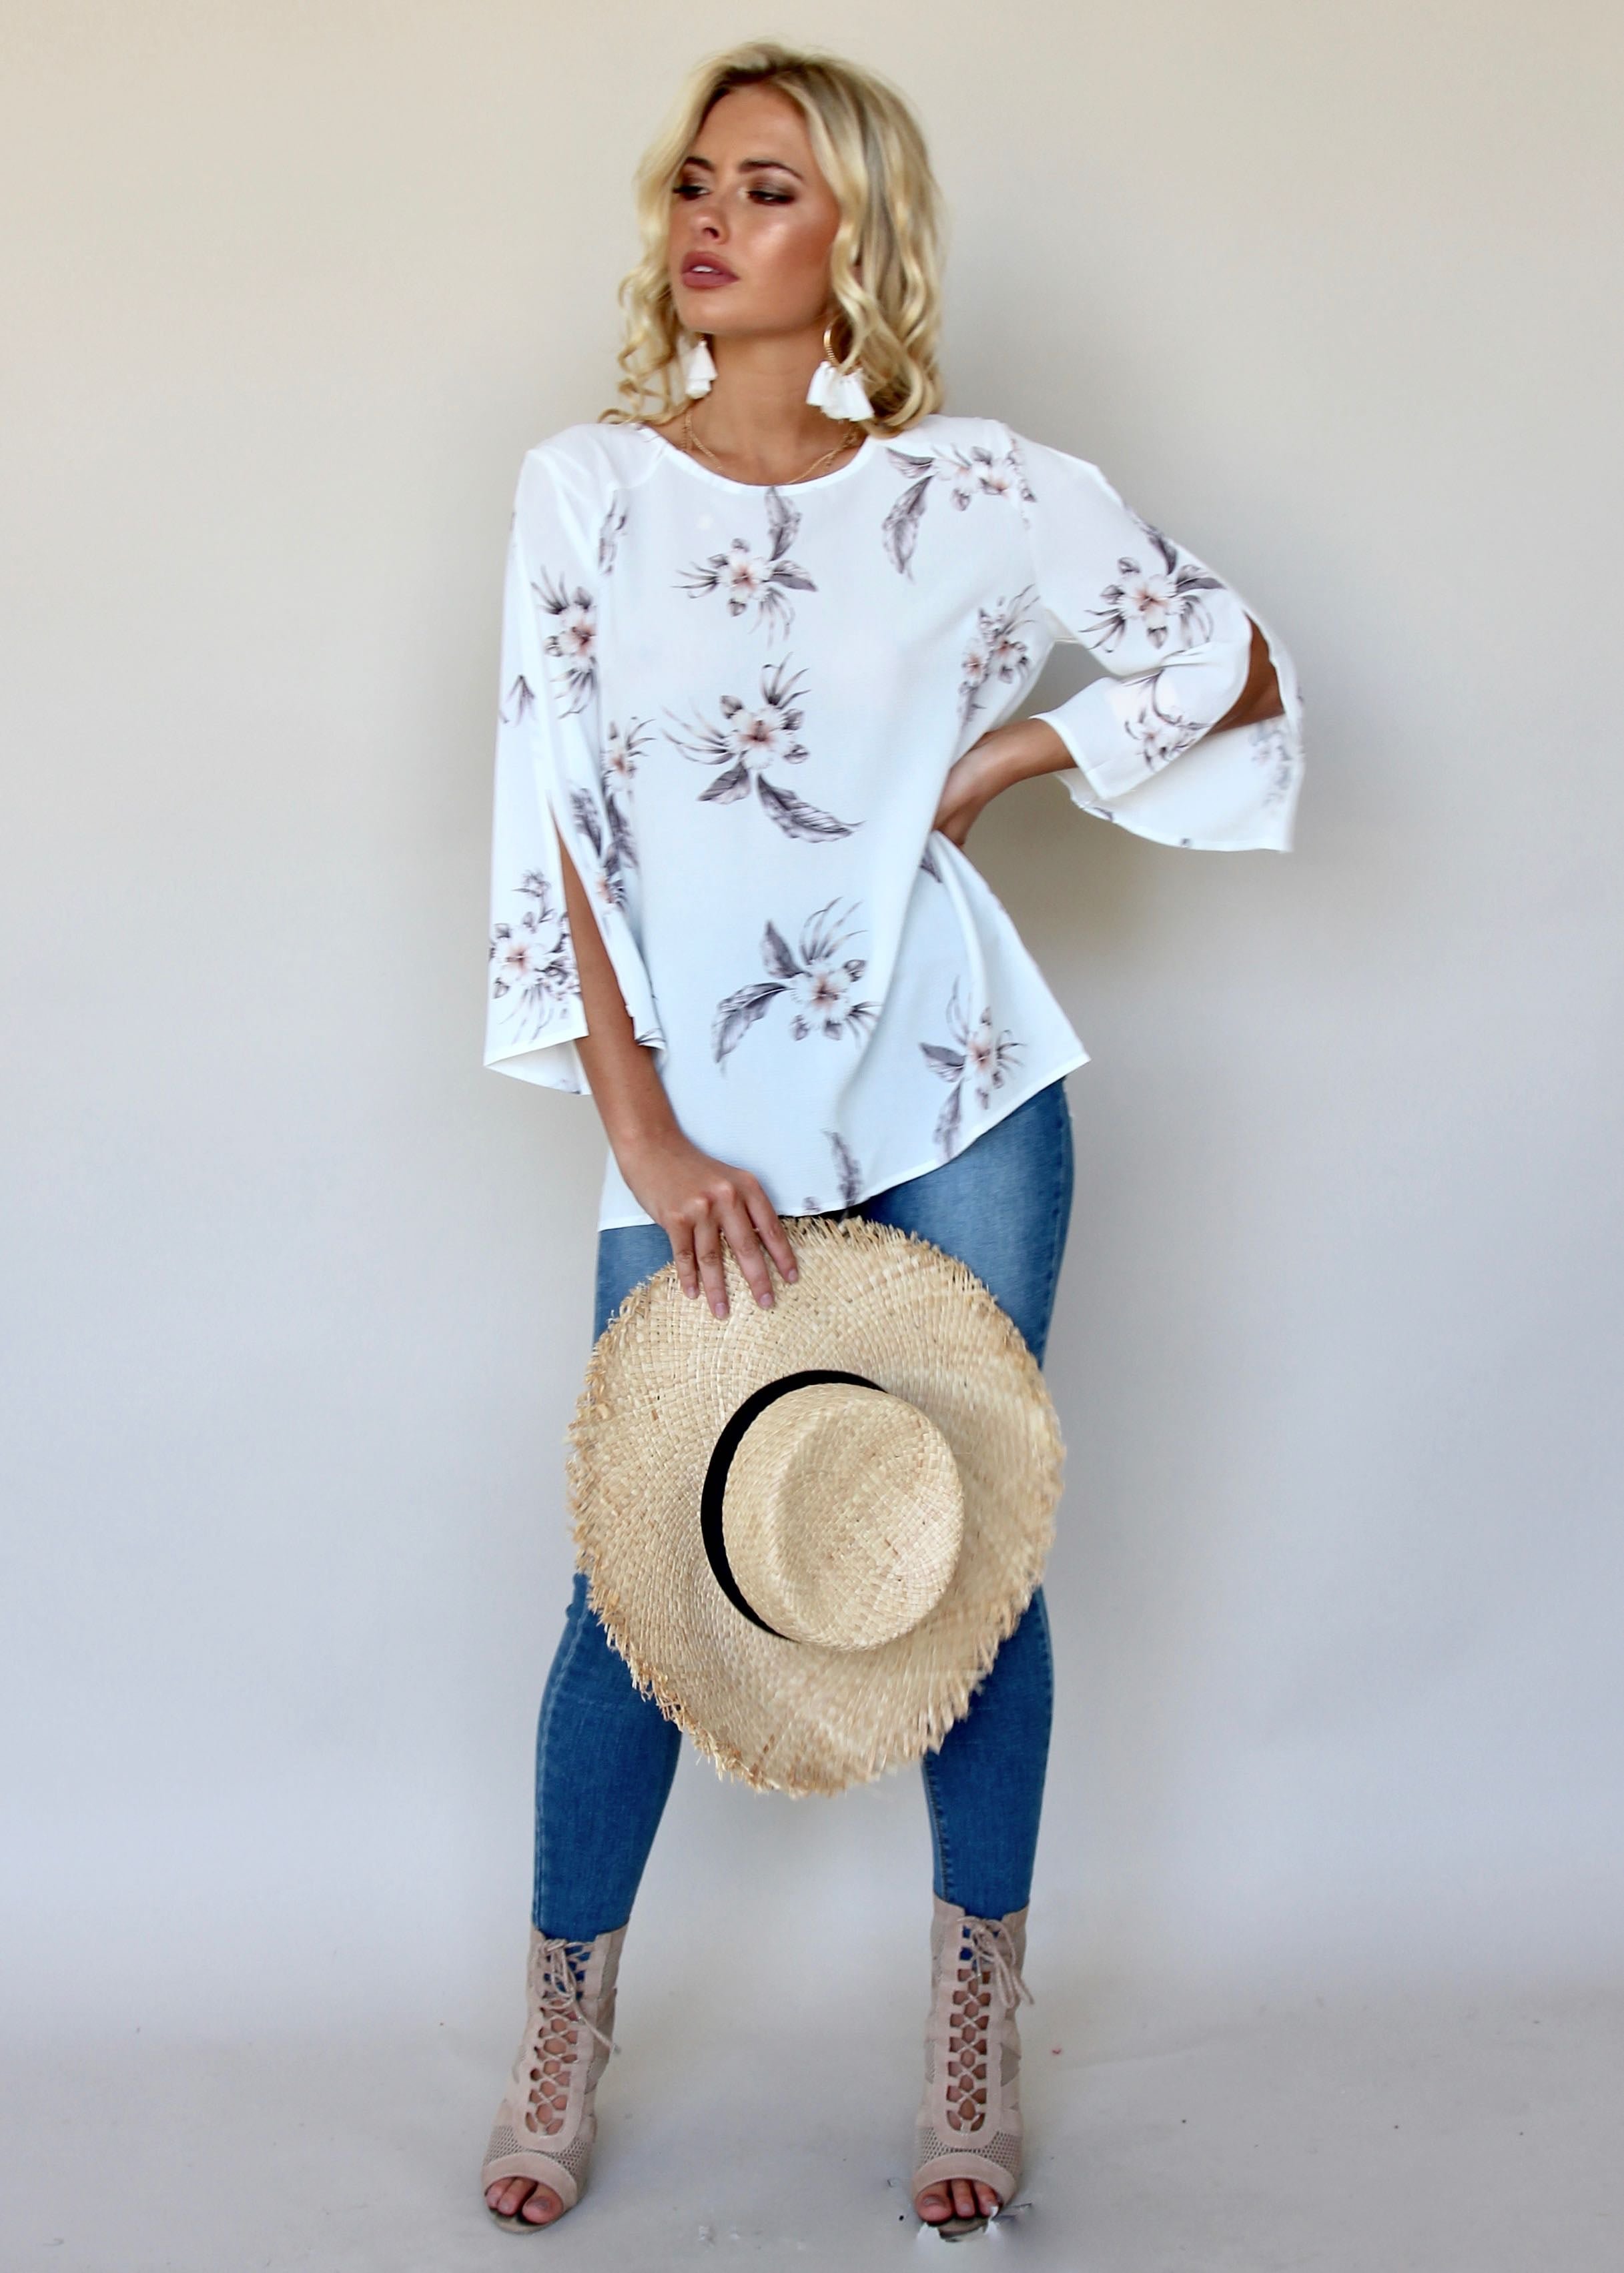 Golden Lights Blouse - White Botanic